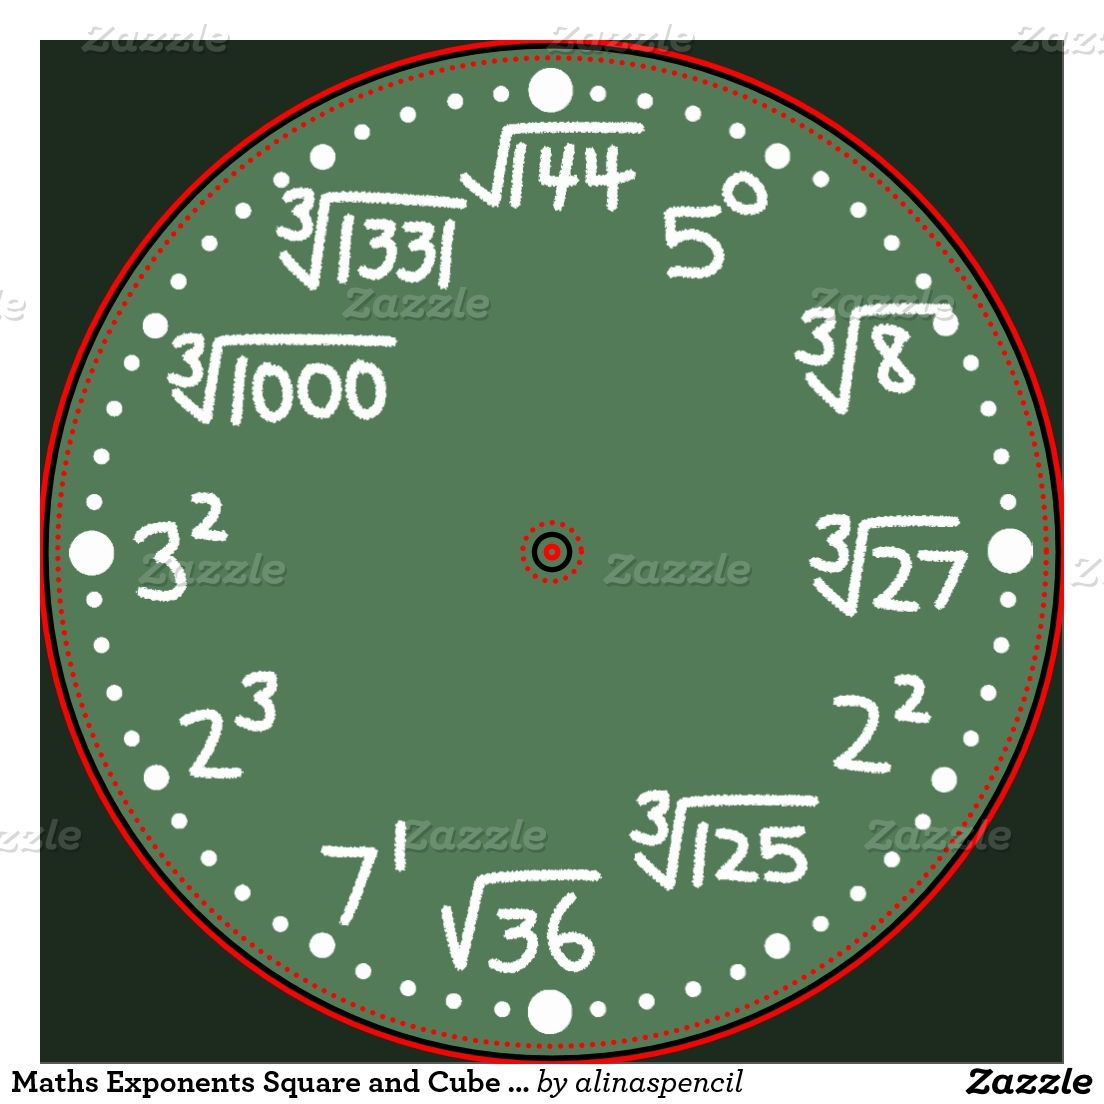 small resolution of Maths Exponents Square and Cube Roots Wall Clock   Zazzle.com   Exponents